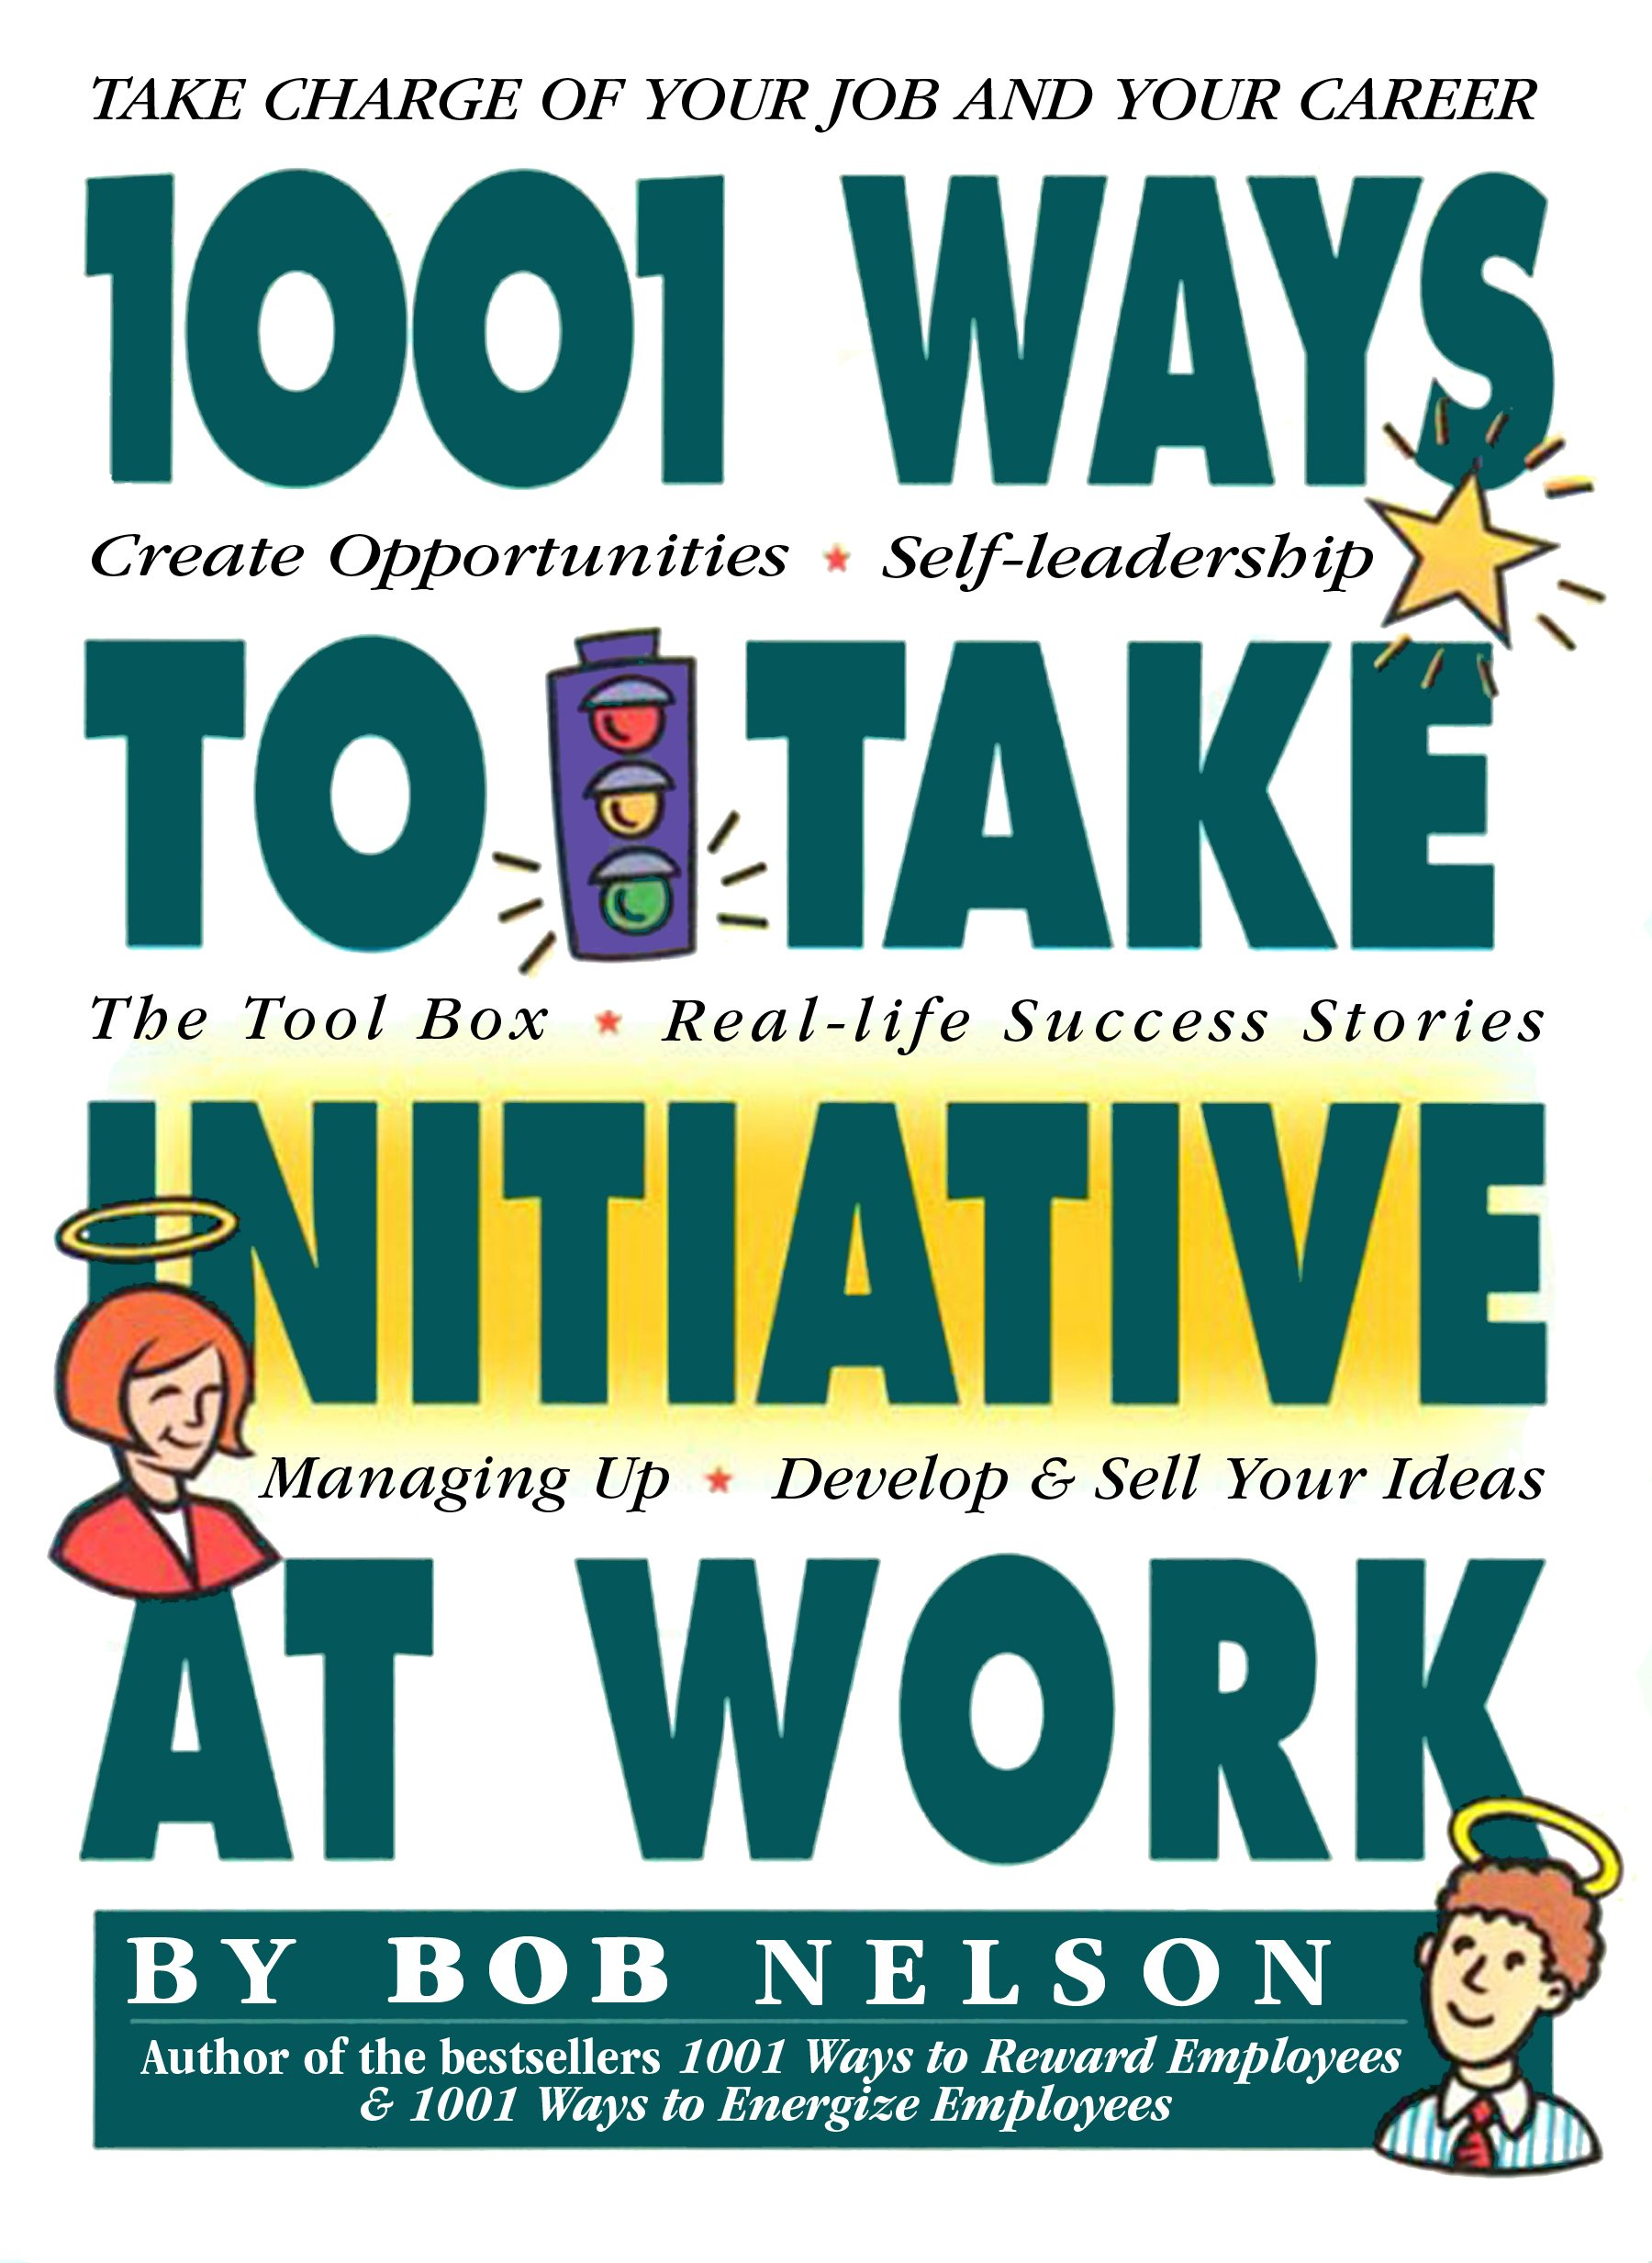 1001 ways to take initiative at work bob nelson phd 9780761114055 amazoncom books - Taking Initiative In The Workplace